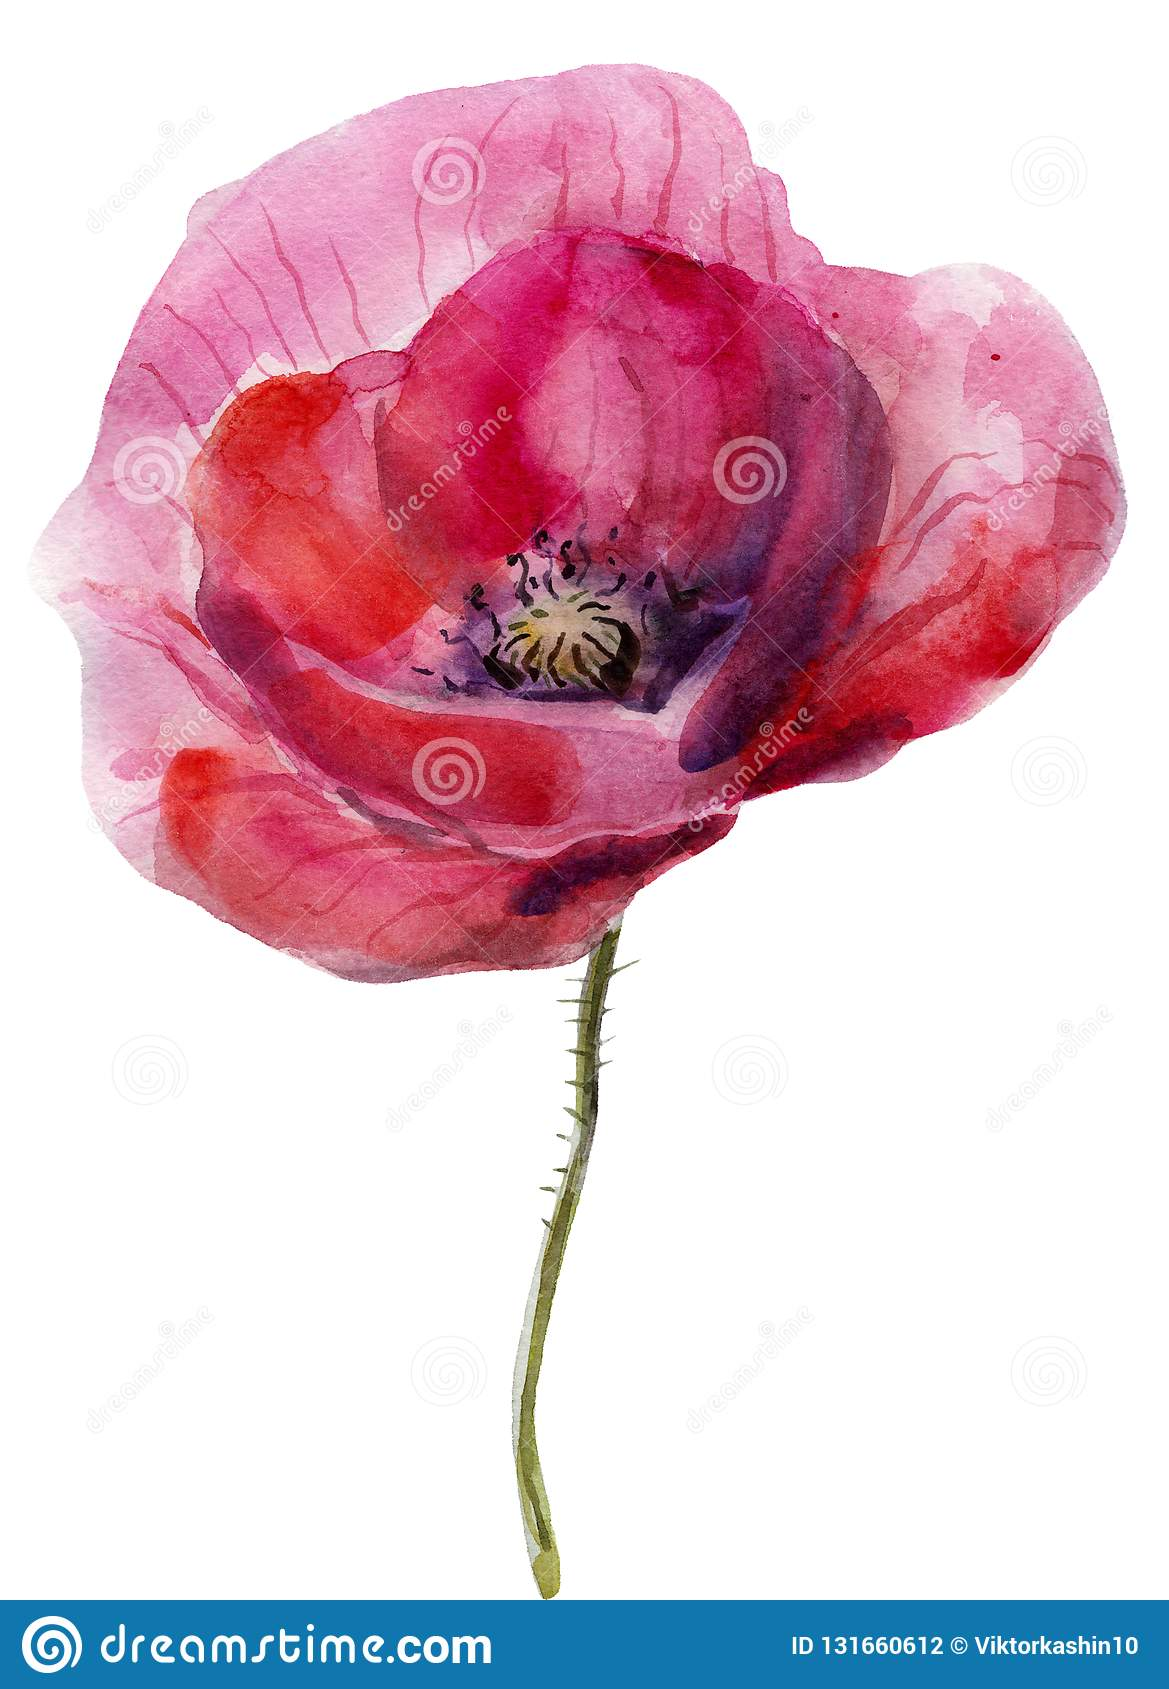 Watercolor Poppy The Flower Clipart Isolated On A White Background